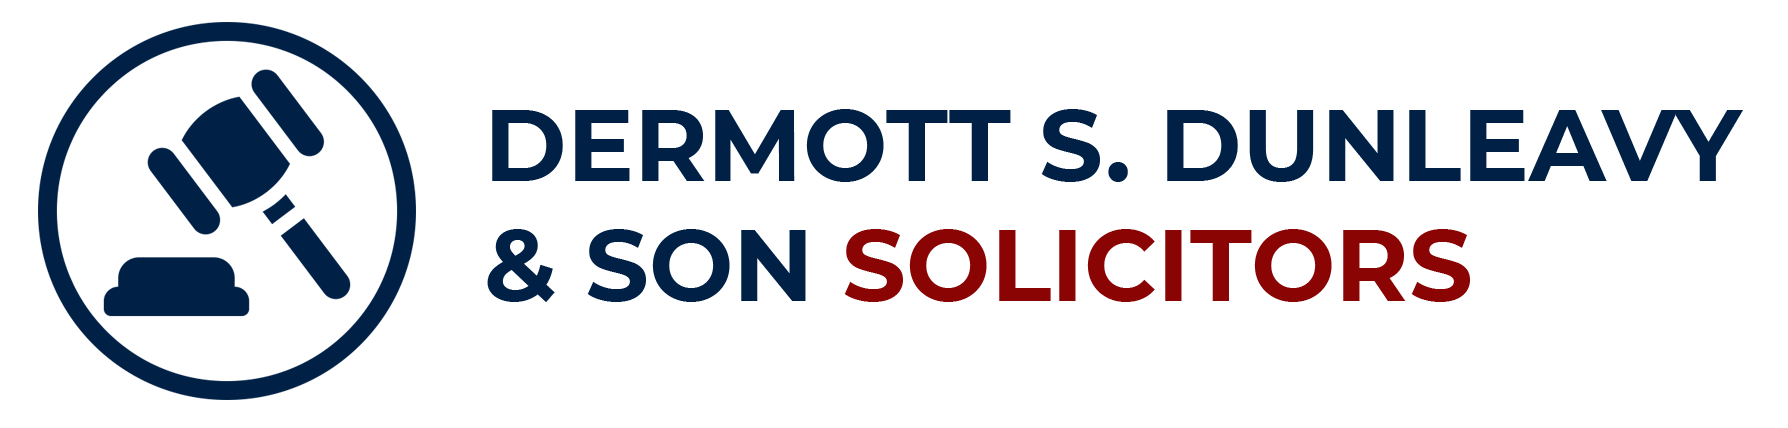 The Dermott S. Dunleavy & Son Solicitors Logo